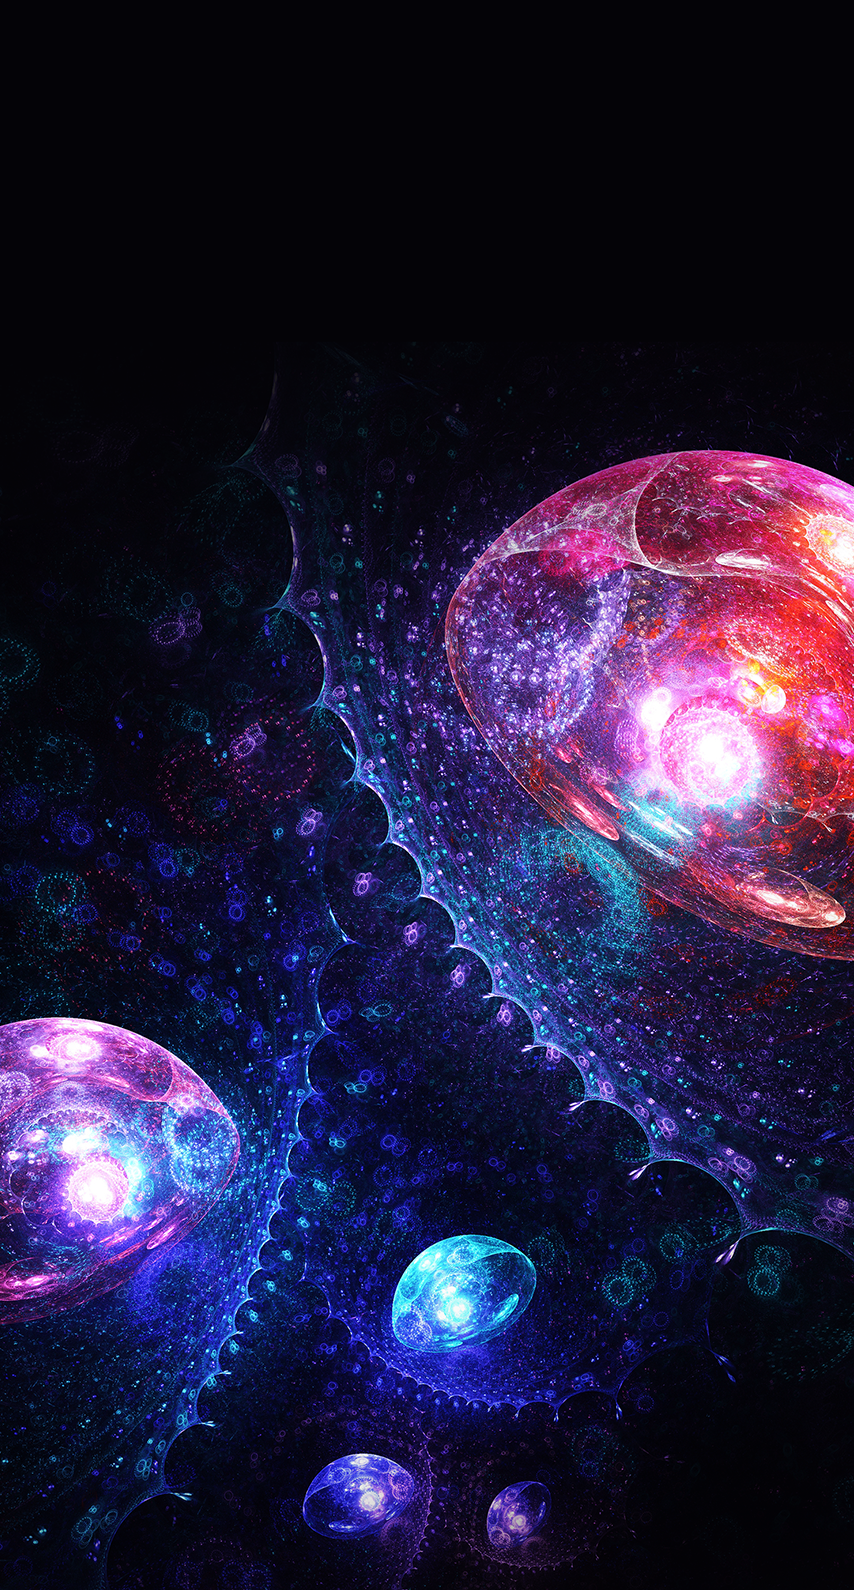 design, insubstantial, wallpaper, desktop, fractal, luminescence, round out, science, astronomy, cosmos